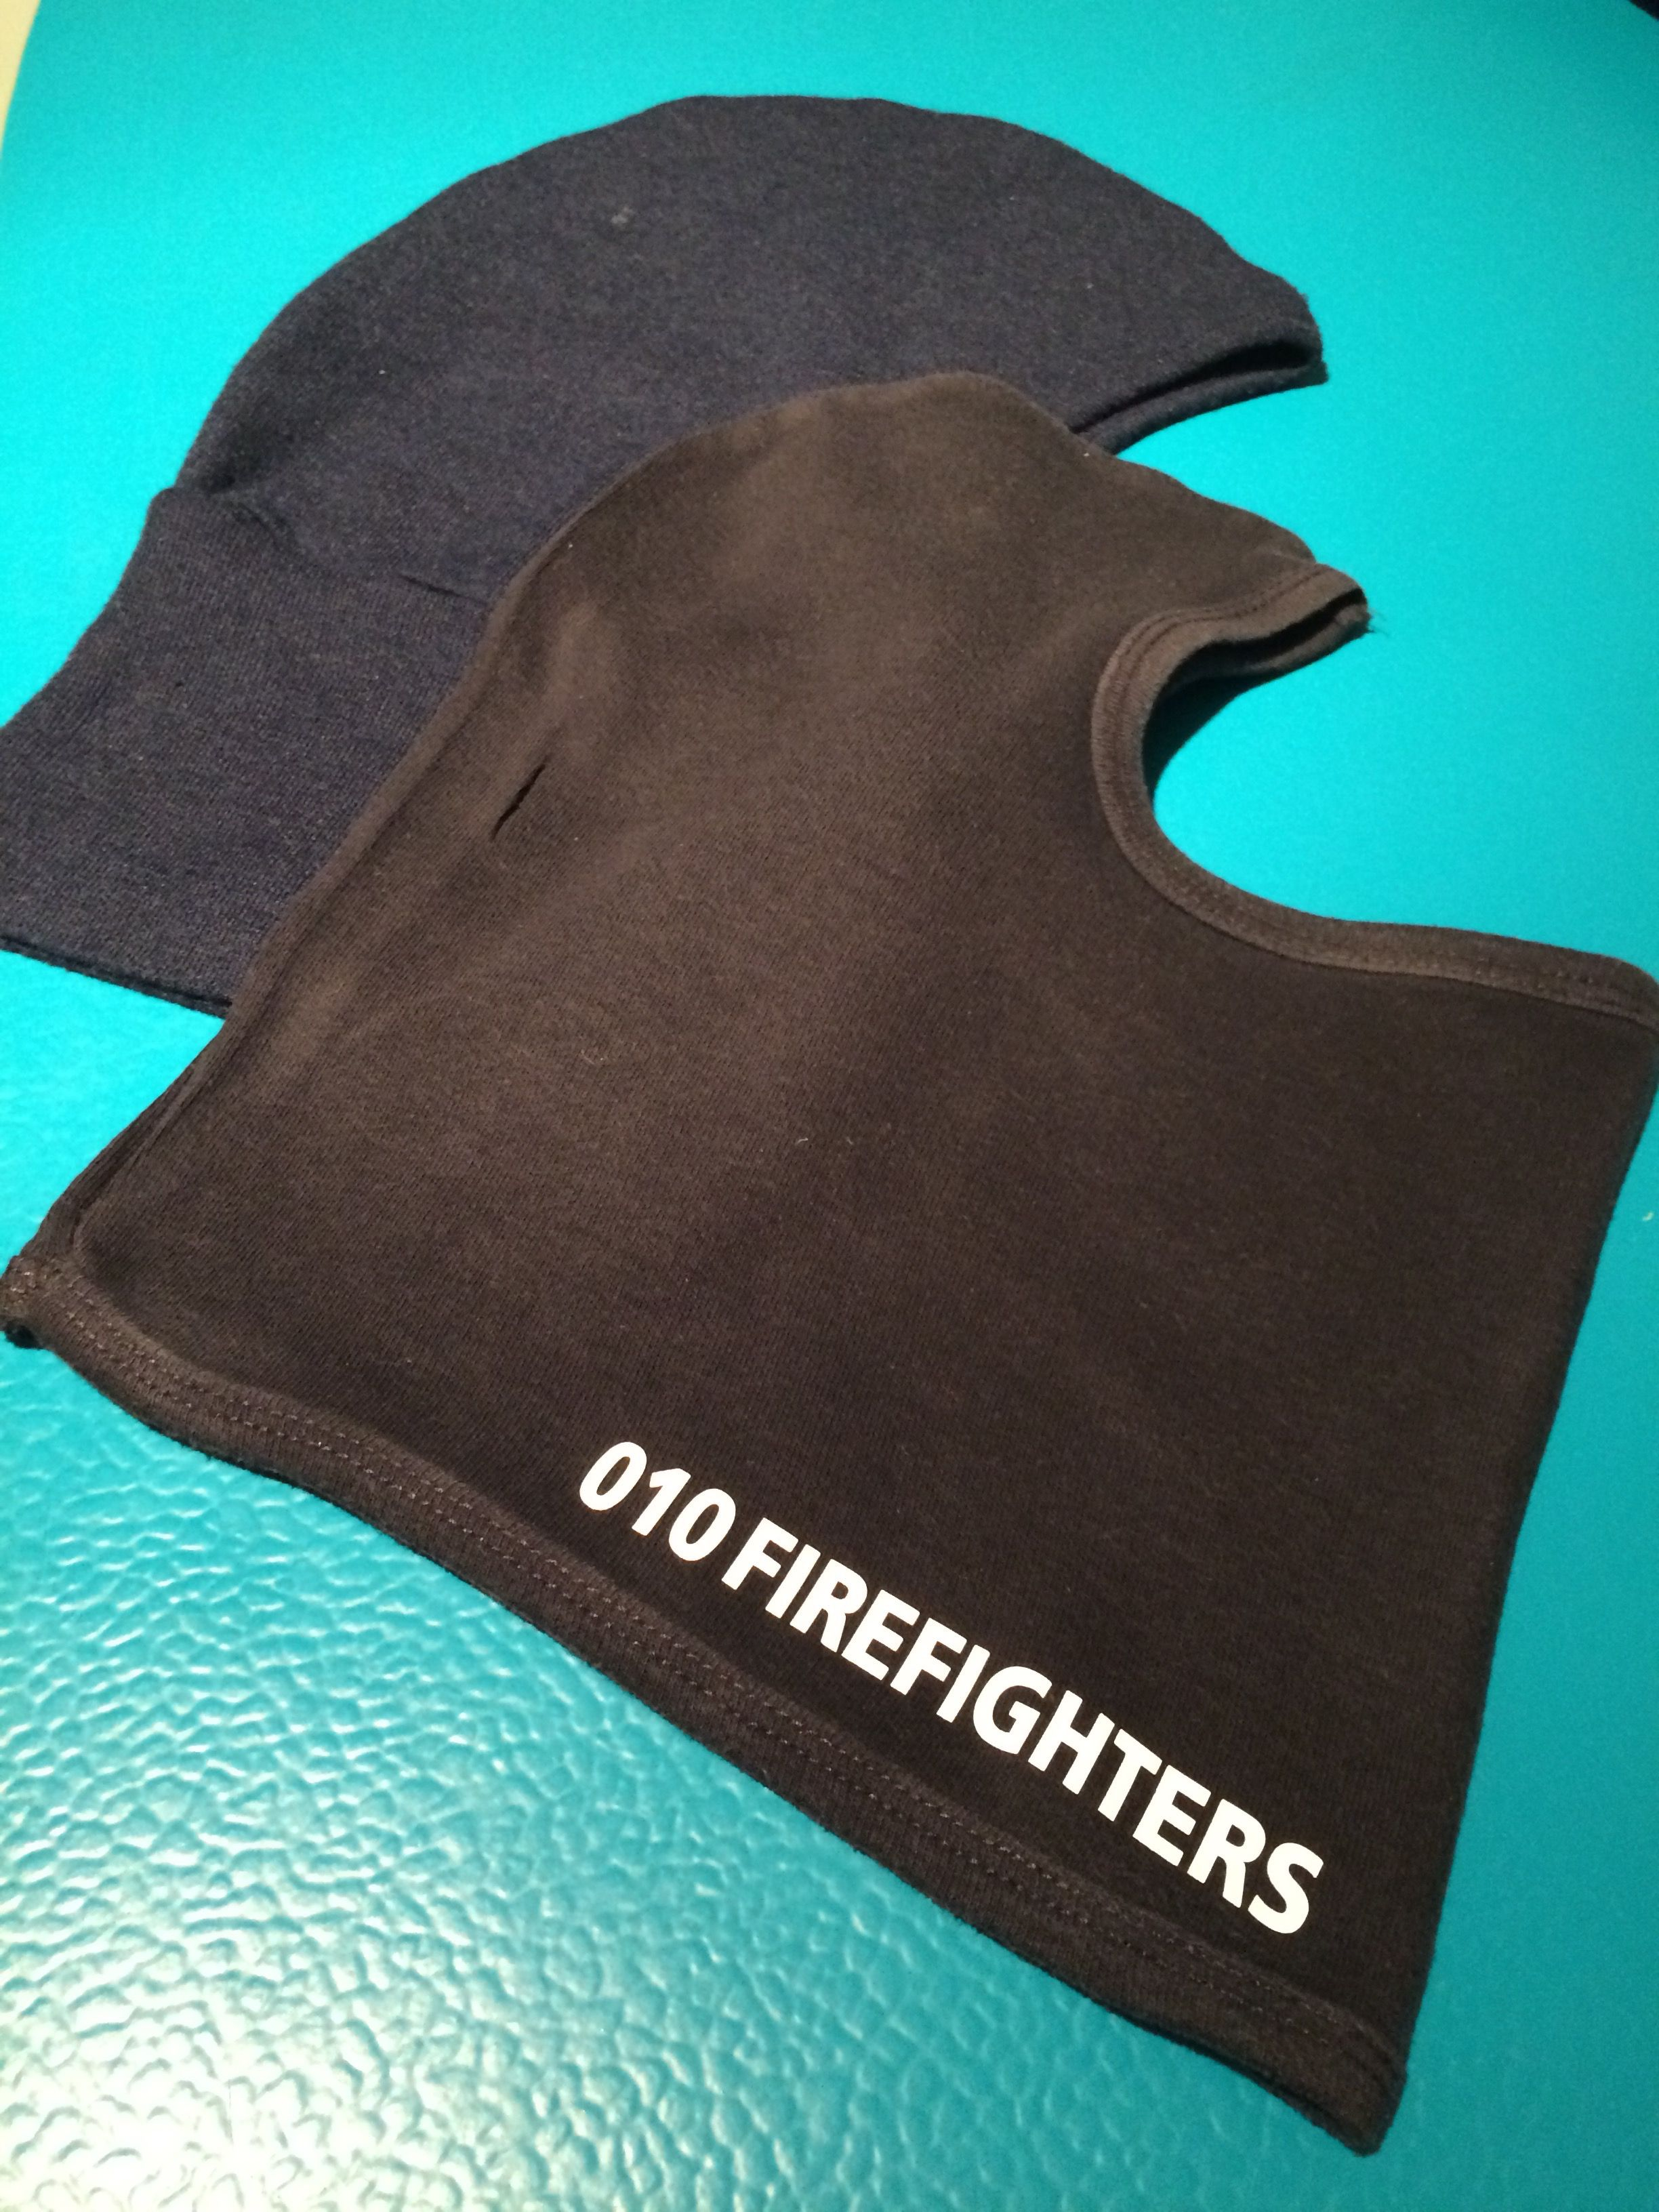 010Firefighters